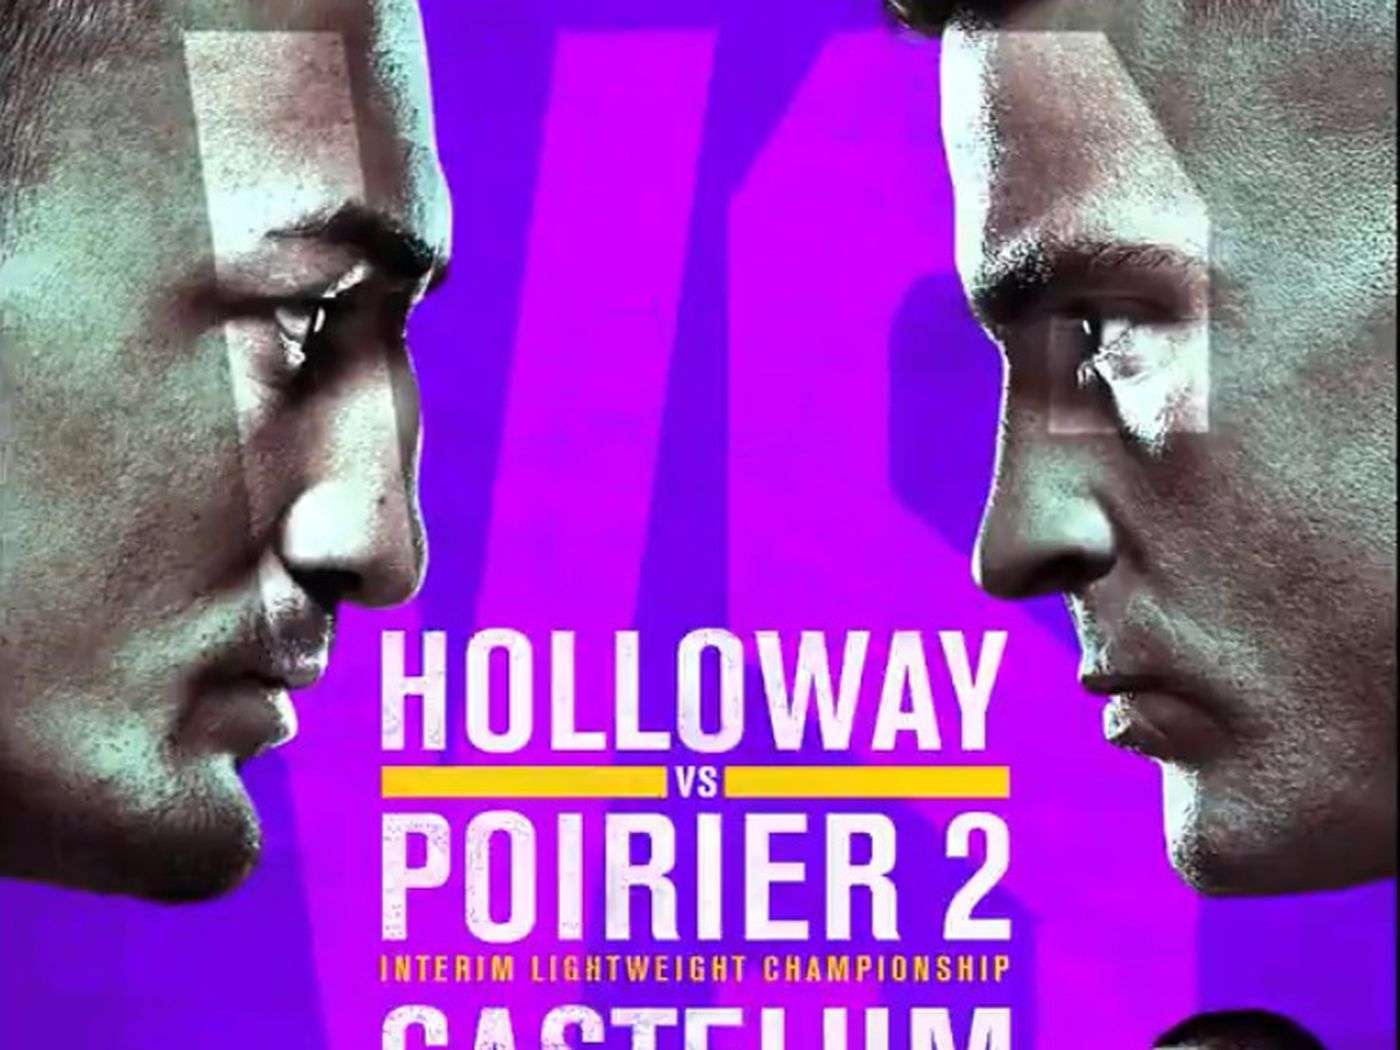 Pic UFC 236 official poster drops for Holloway vs Poirier 2 1400x1050